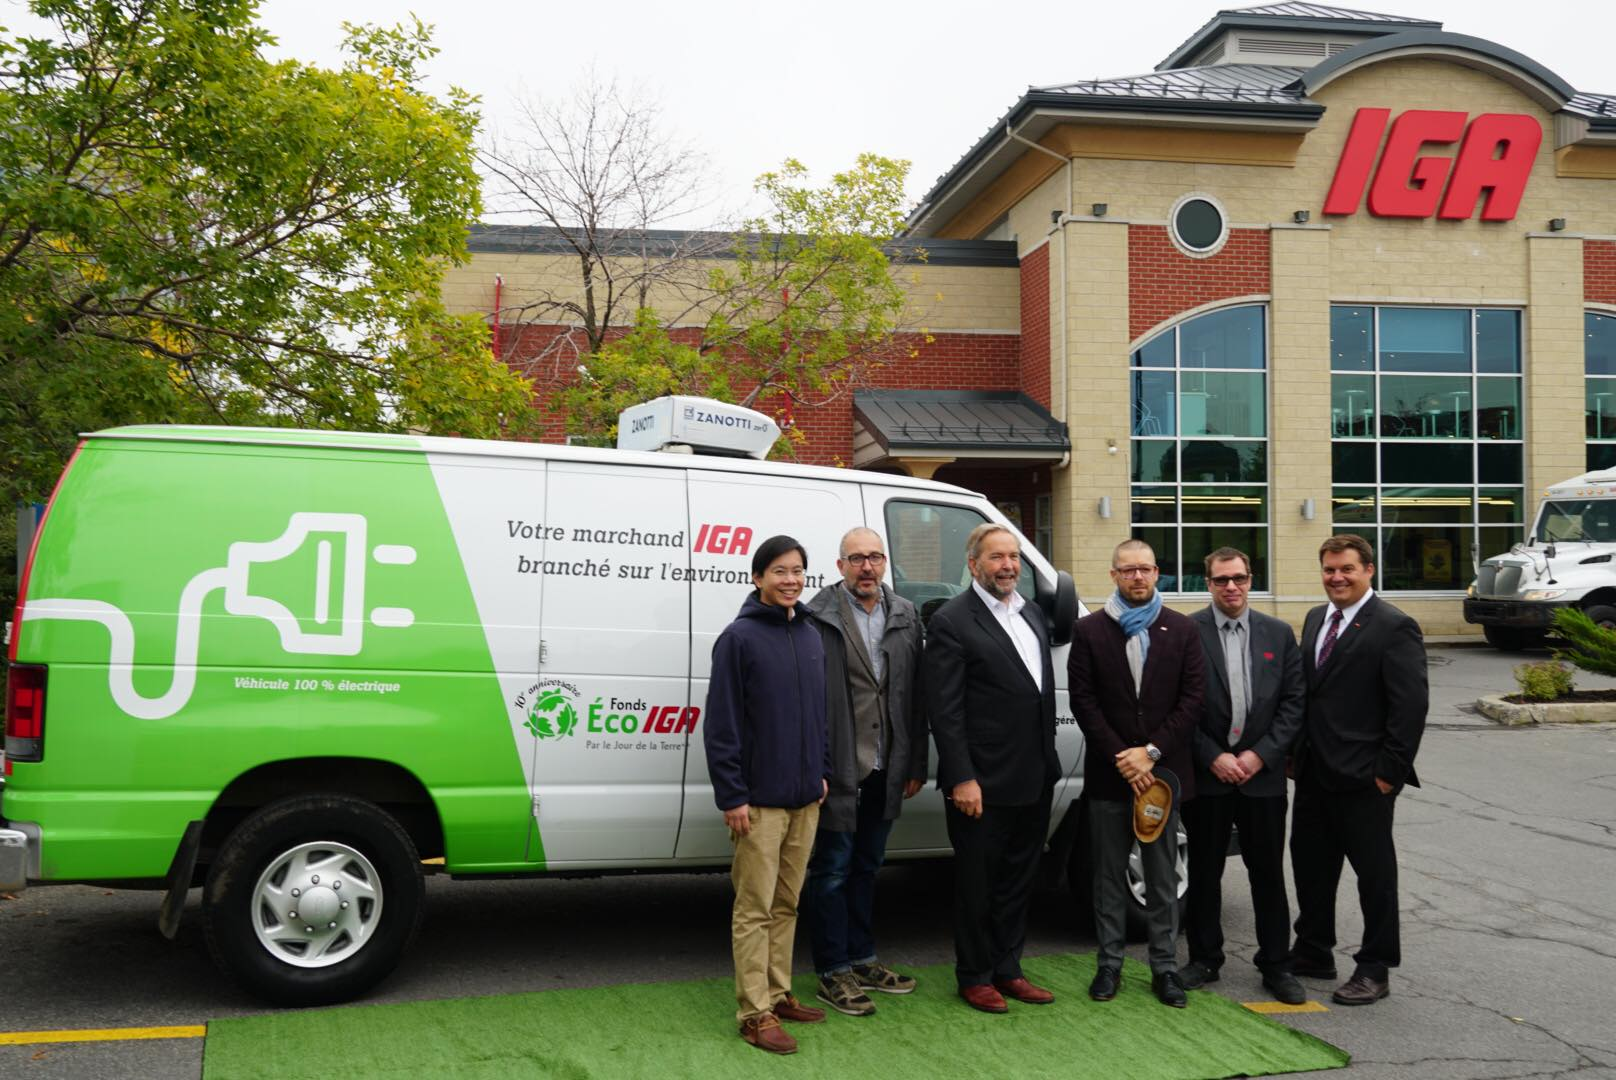 The First 100% Electric Refrigerated Home Delivery Van is at IGA Louise Ménard in Nun's Island!